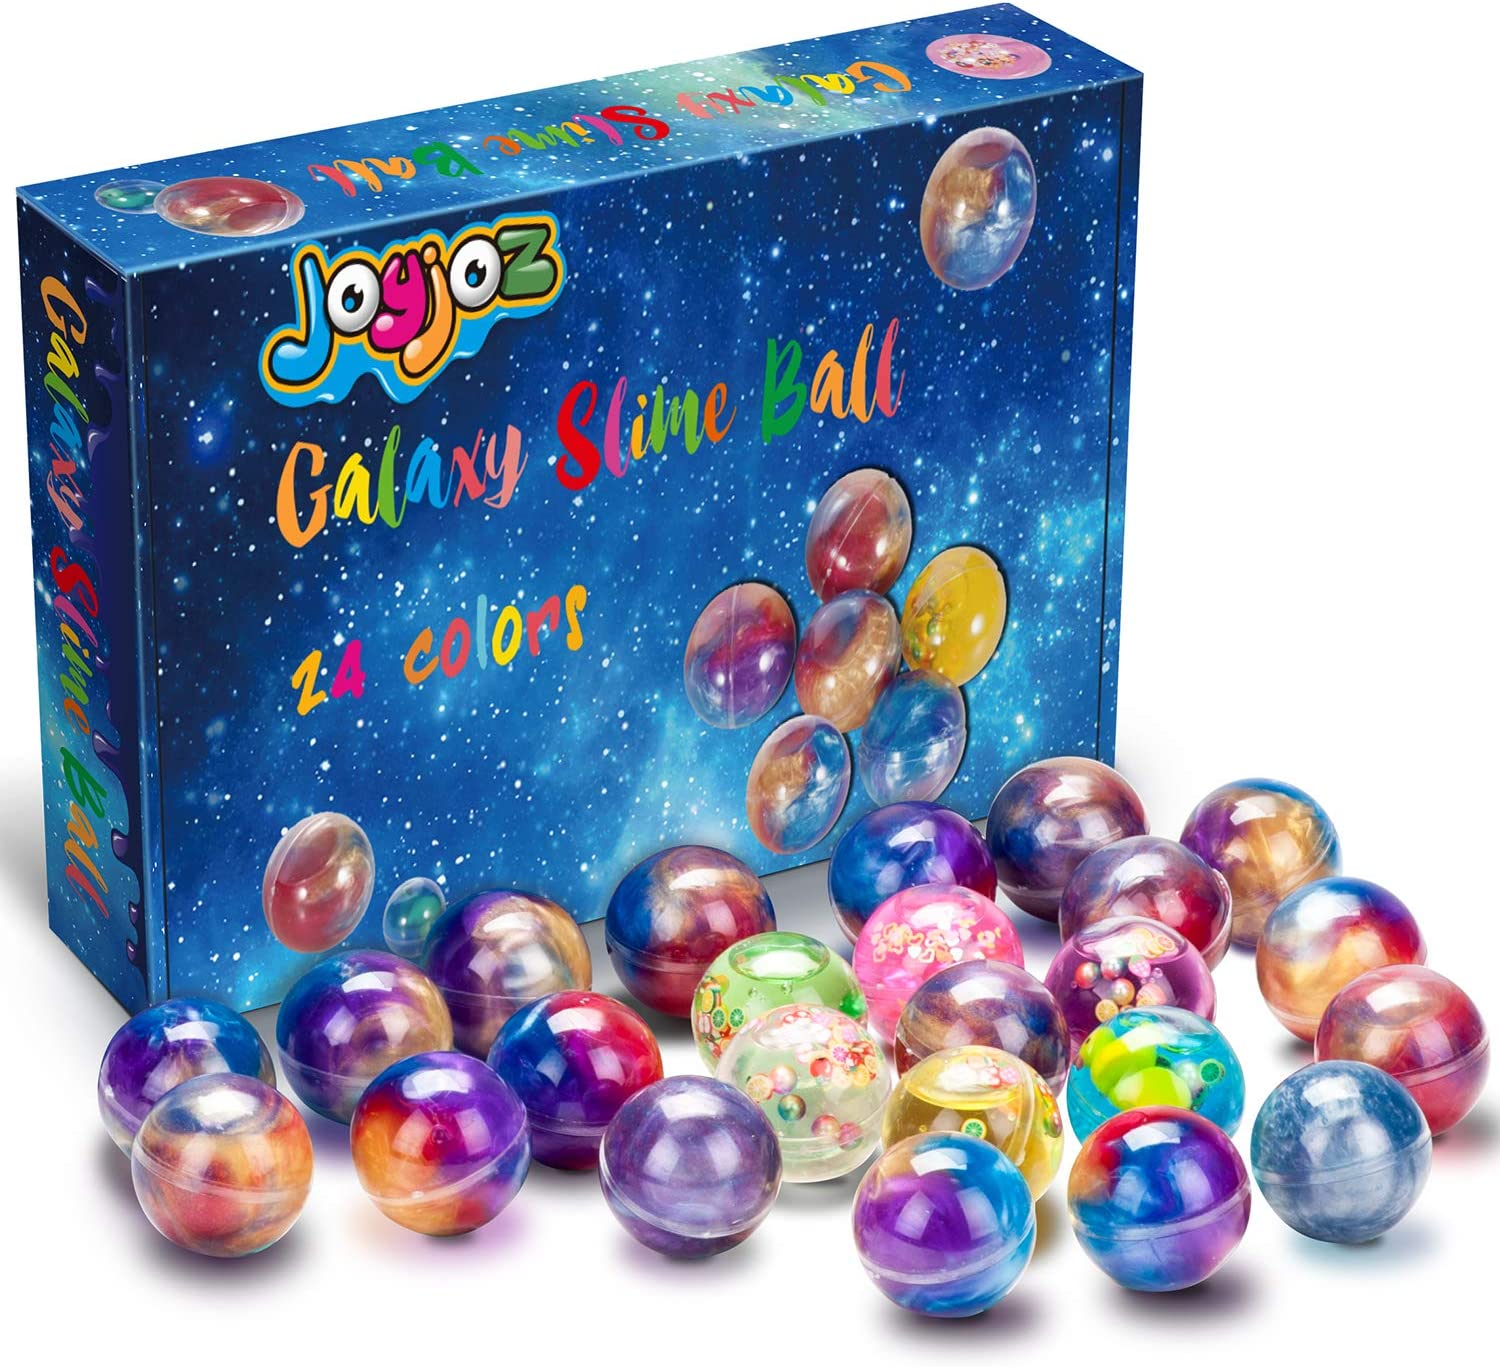 Joyjoz Kids Party Favors Slime, 24 Pack Galaxy Slime Ball Kits with Crystal Slime, Party Favors for Kids, Unicorn Party Slime, Fluffy & Stretchy, Non-Sticky, Stress Relief, Super Soft for Girls & Boys: Toys & Games